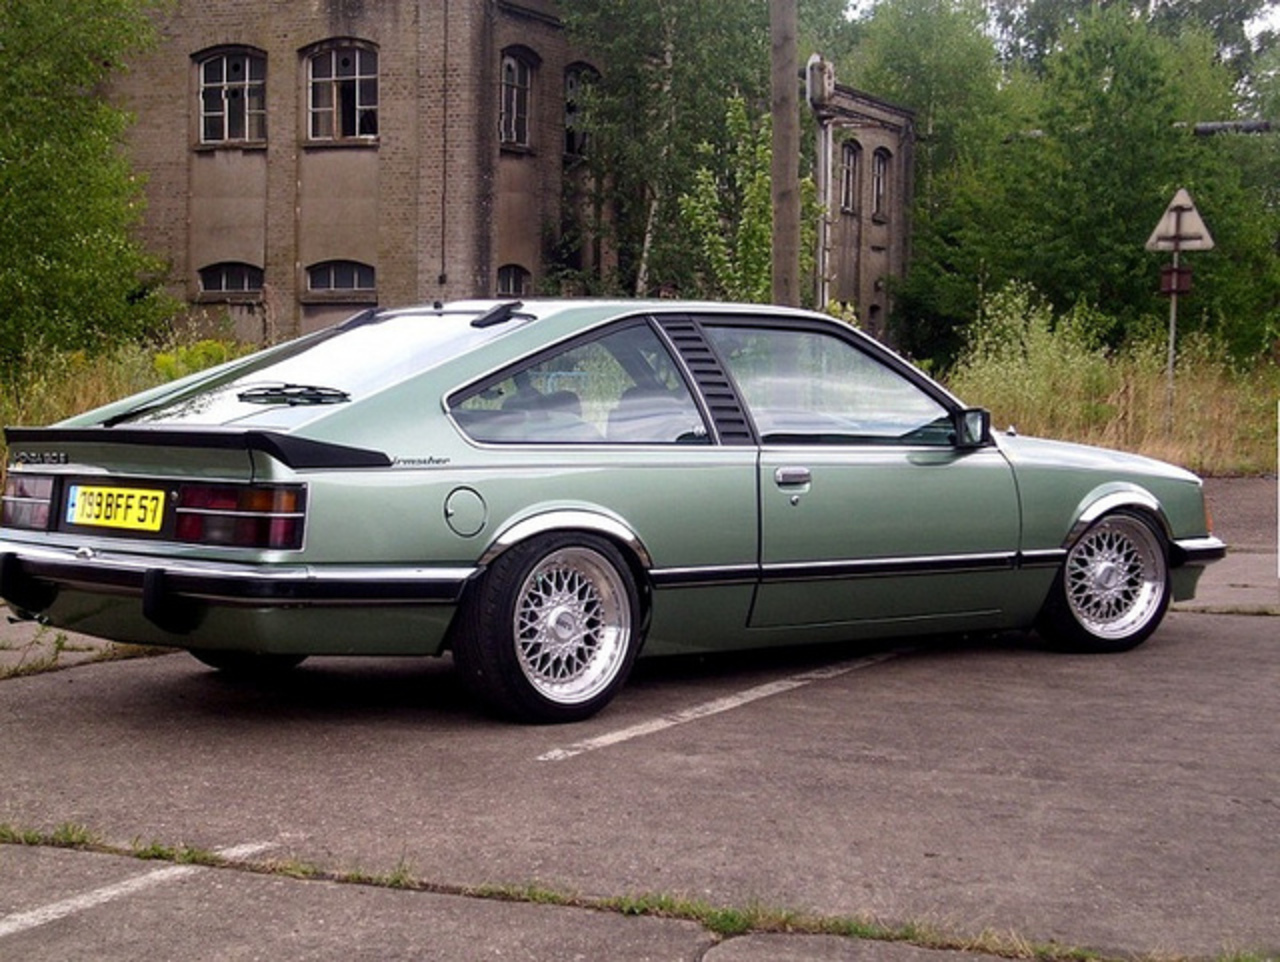 All photos of the renault rodeo 6 on this page are represented for - Opel Monza Flickr Photo Sharing